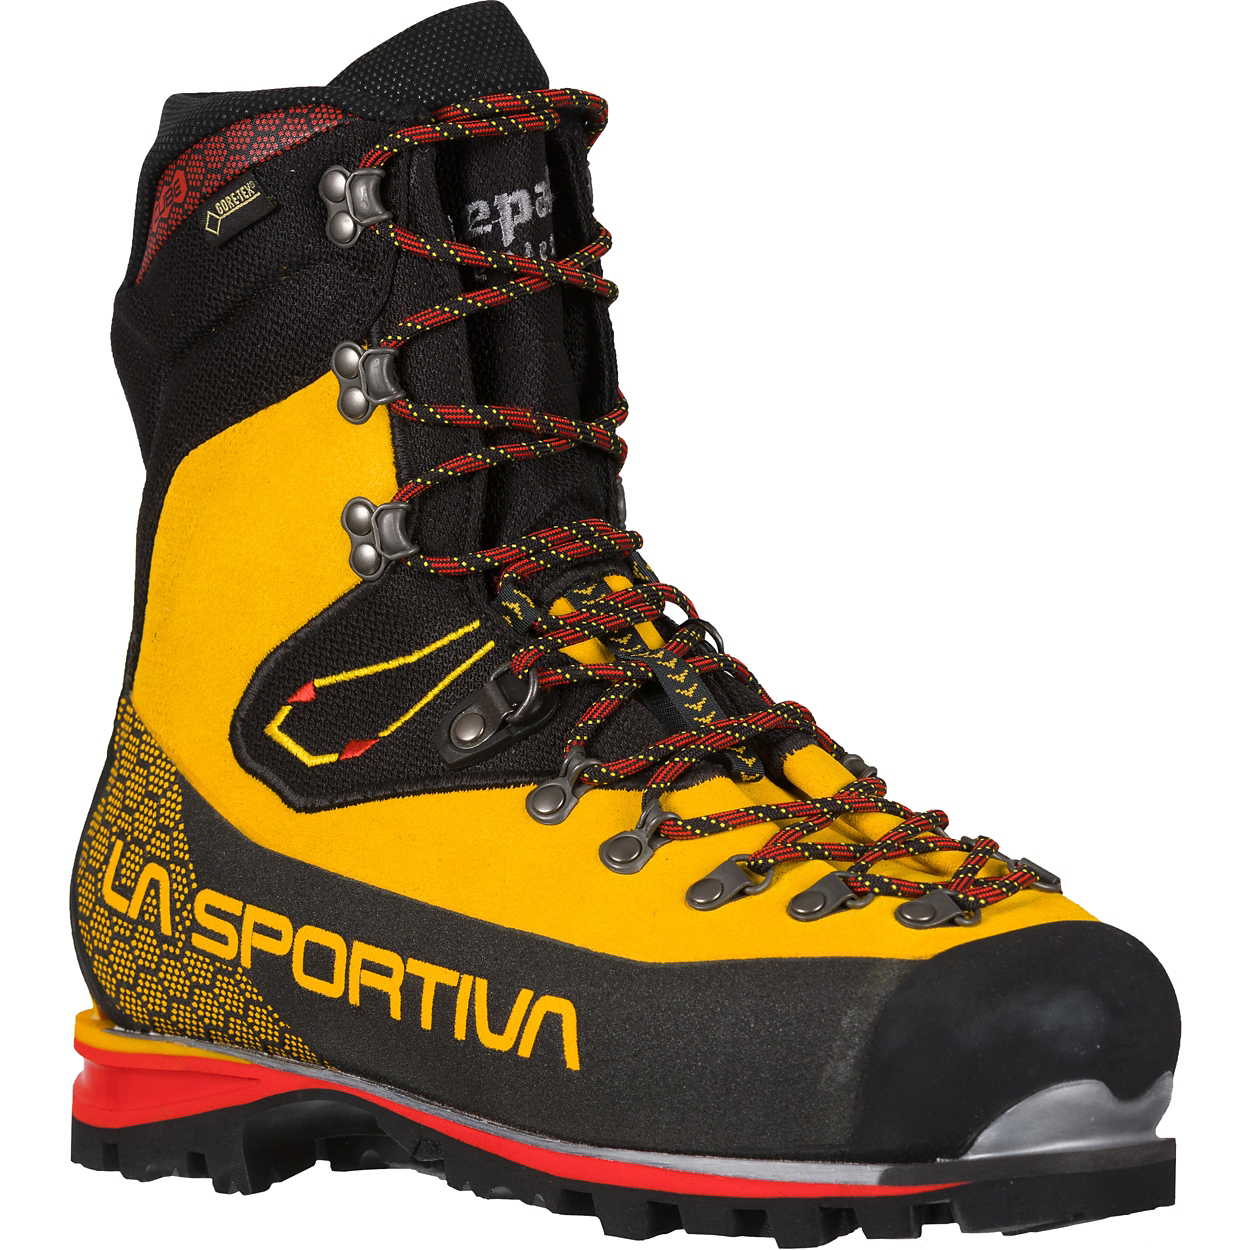 ffcbe487b Men's Mountaineering Shoes at MountainGear.com